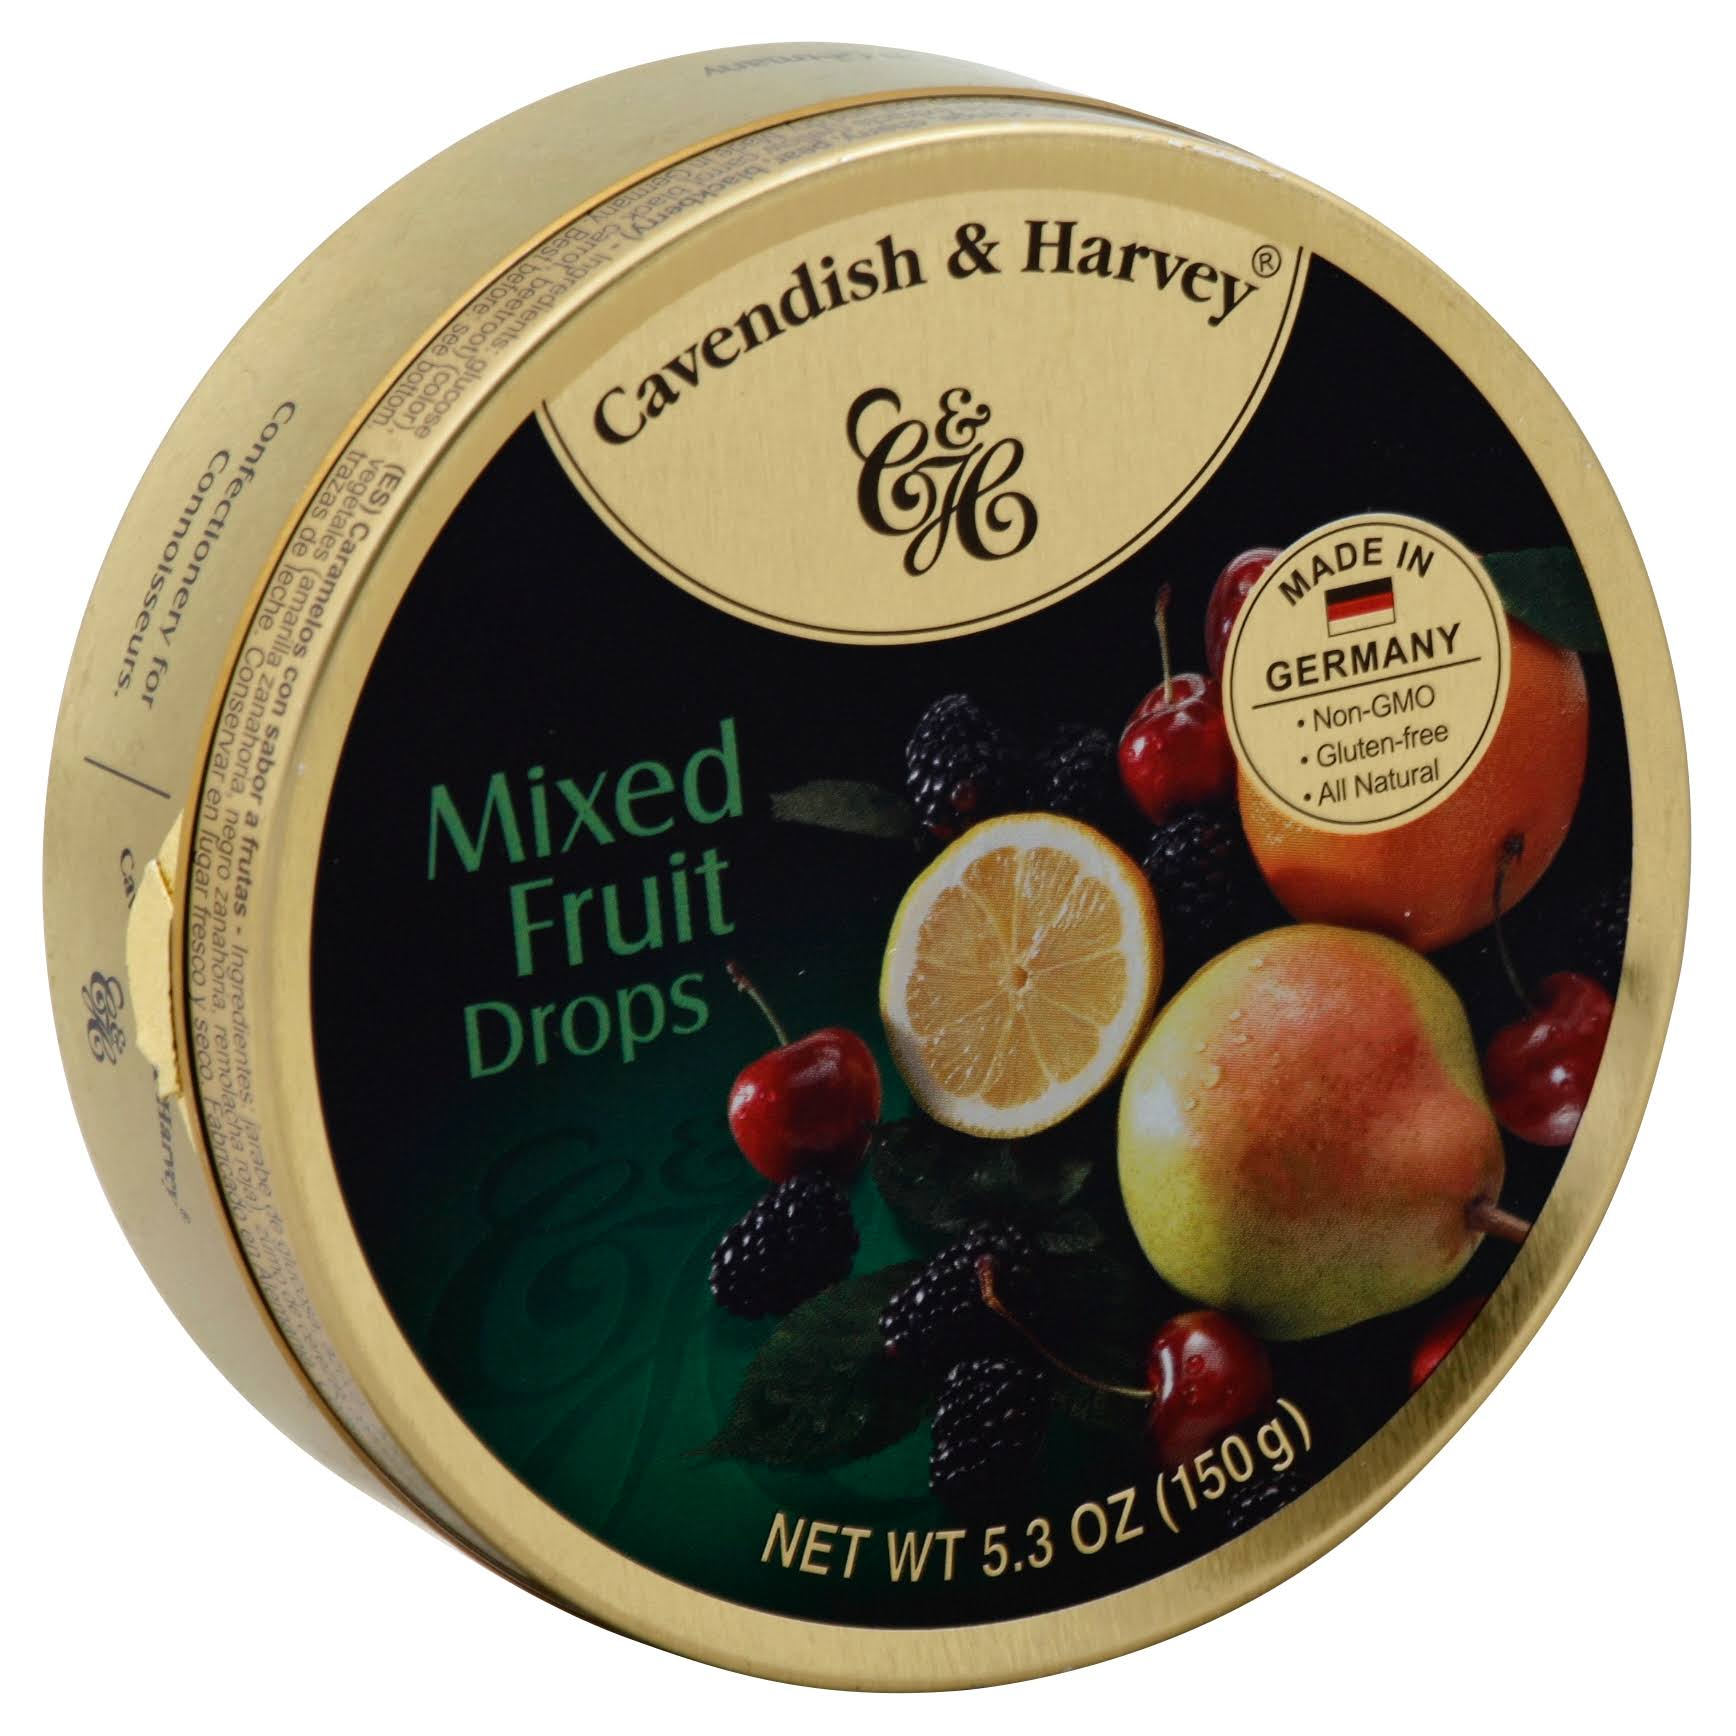 Cavendish and Harvey Hard Candy - Mixed Fruit Drops, 5.3oz